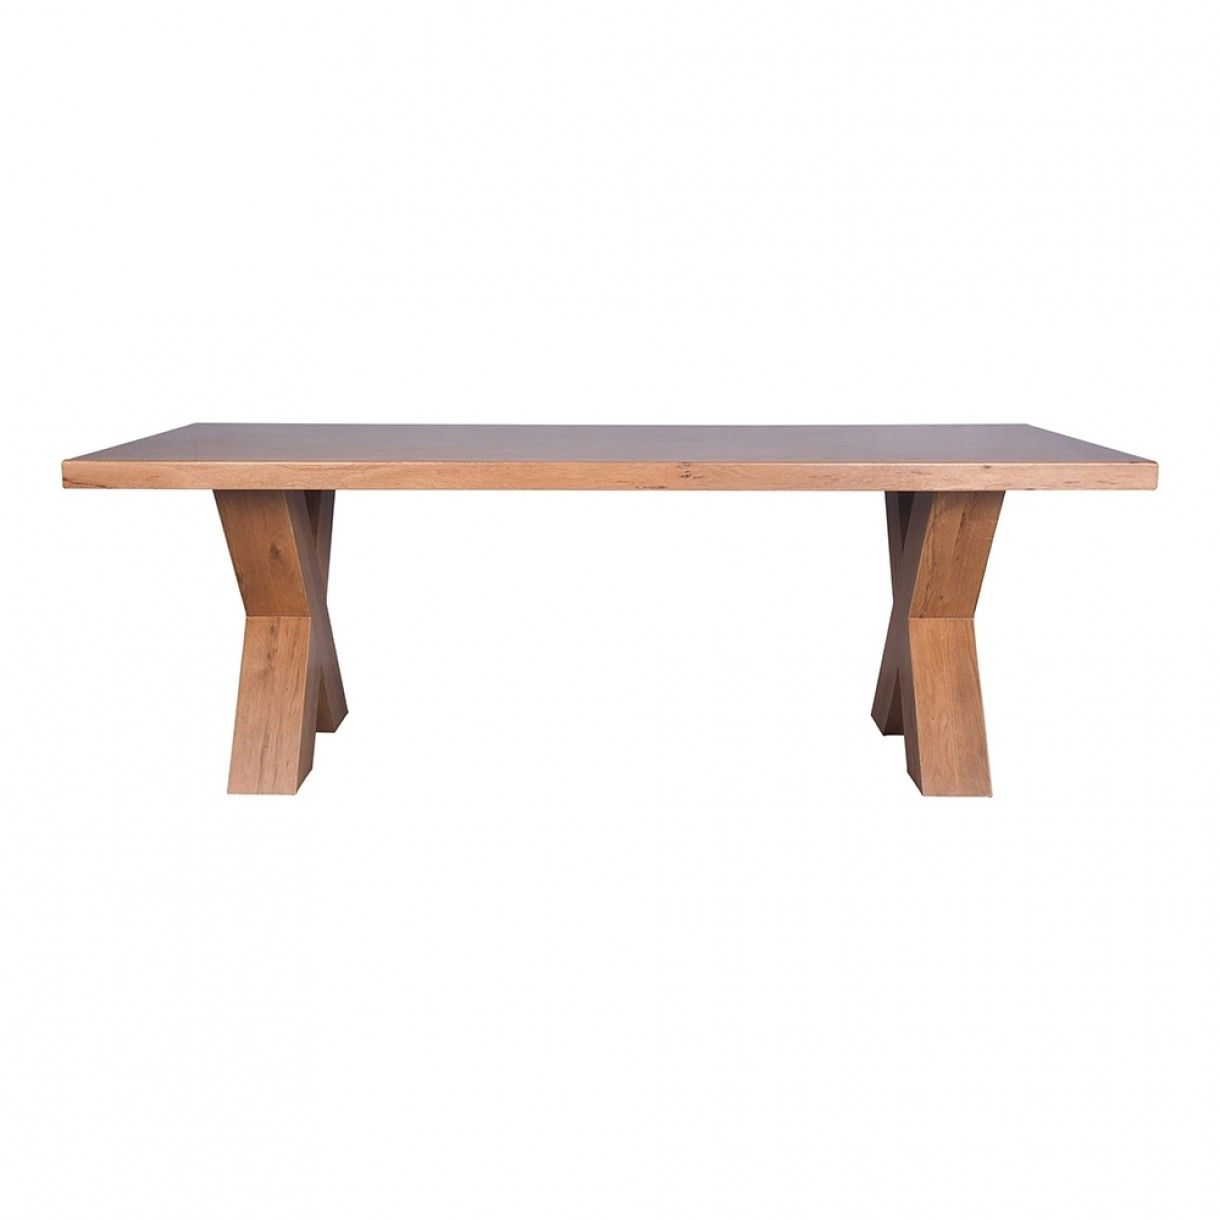 Brilliant Oakdale Cross Leg Dining Table 2300 X 1000Mm For The Home Squirreltailoven Fun Painted Chair Ideas Images Squirreltailovenorg